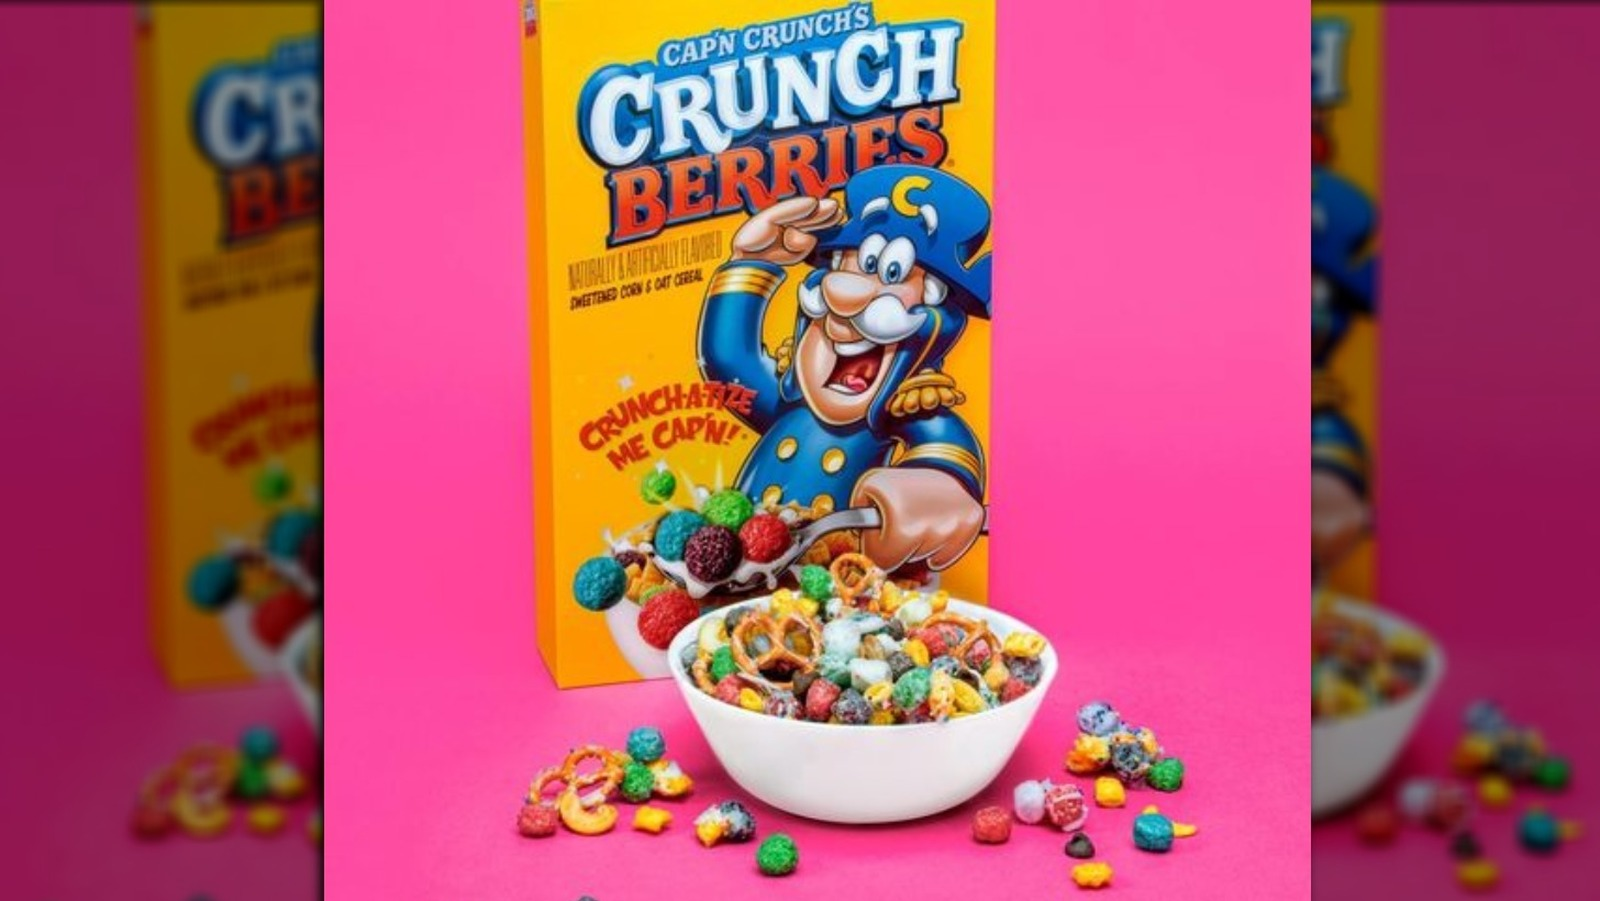 Wyxmh9luwzmm9m There are 6 oops all berries for sale on etsy, and they cost $65.64 on average. https www mashed com 307032 great news for fans of capn crunchs oops all berries